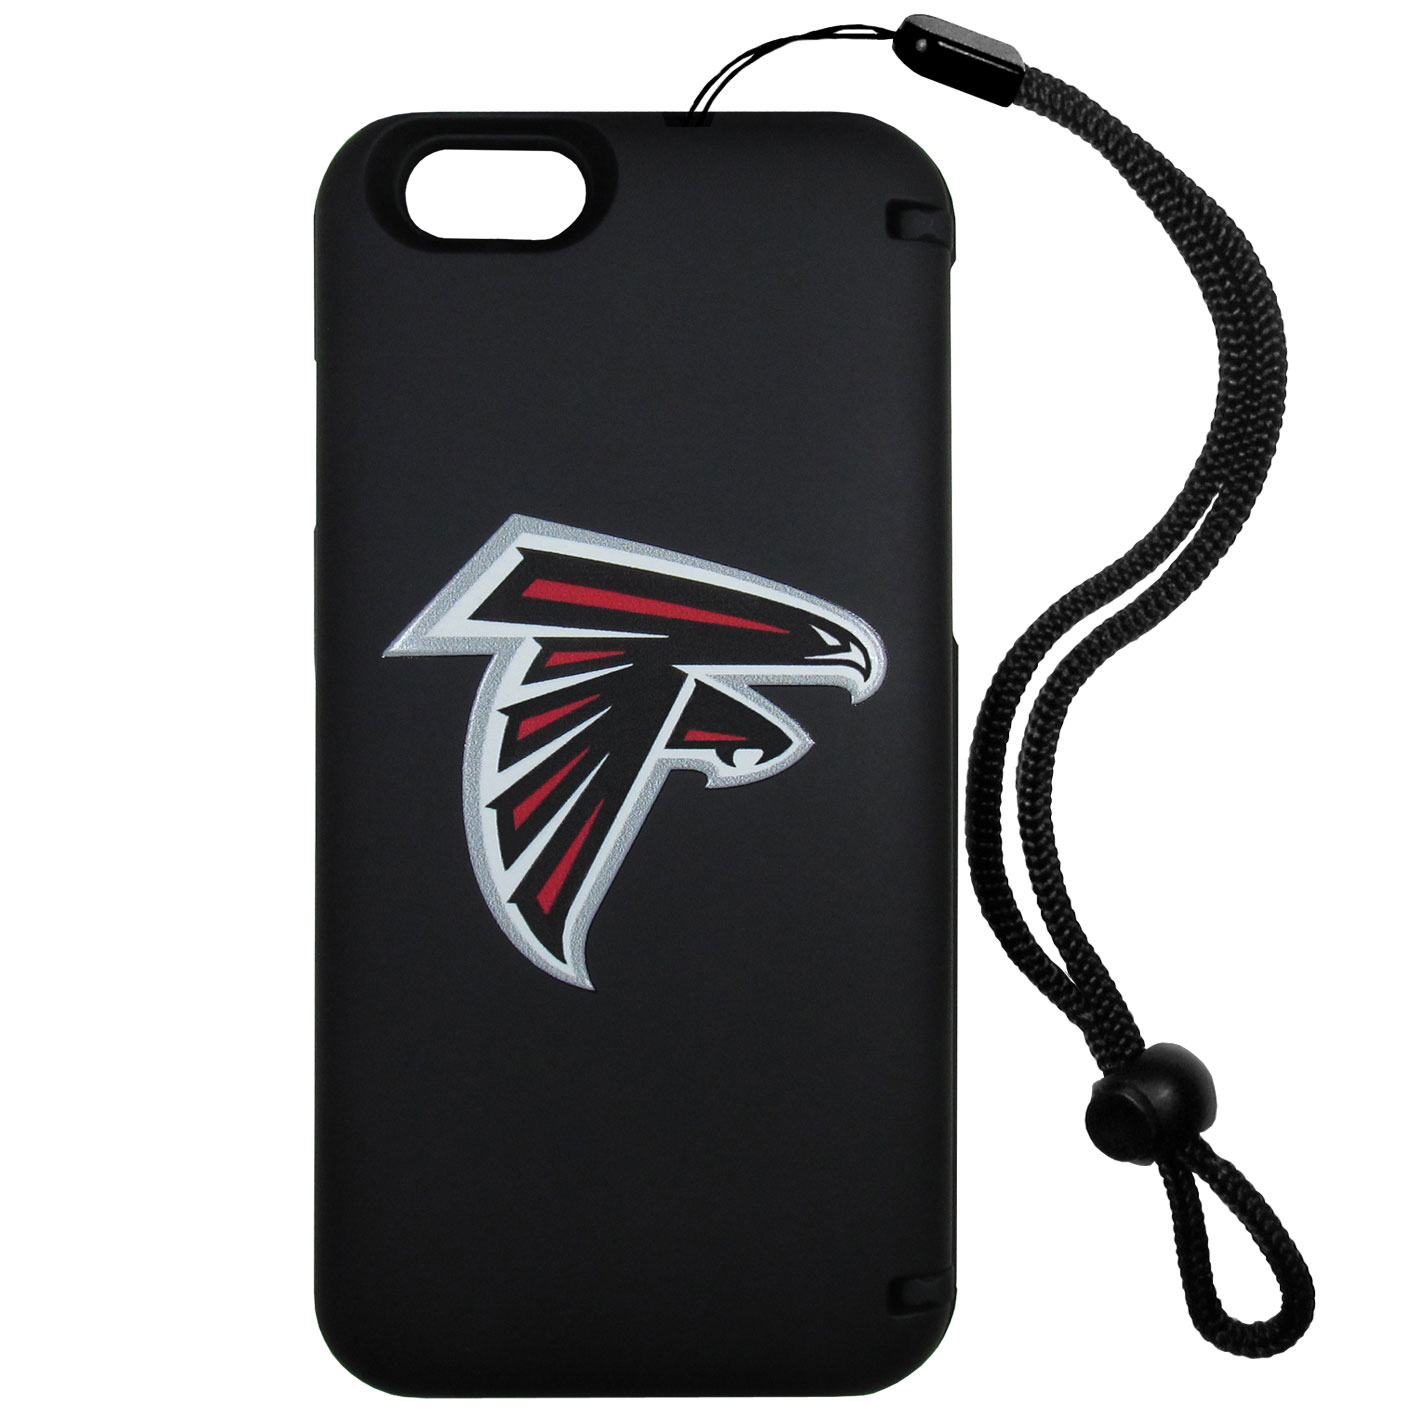 Atlanta Falcons iPhone 6 Plus Everything Case - This case really does have everything but the kitchen sink! The hidden compartment lets you keep your cards, money and tickets to the big game safe and secure and has a compact mirror so you can make sure your game face is ready to go. It also comes with a kickstand to make chatting and watching videos a breeze. The wrist strap allows you to travel with ease with your everything case. If that's not enough, it also comes with the Atlanta Falcons logo printed in expert detail on the front.